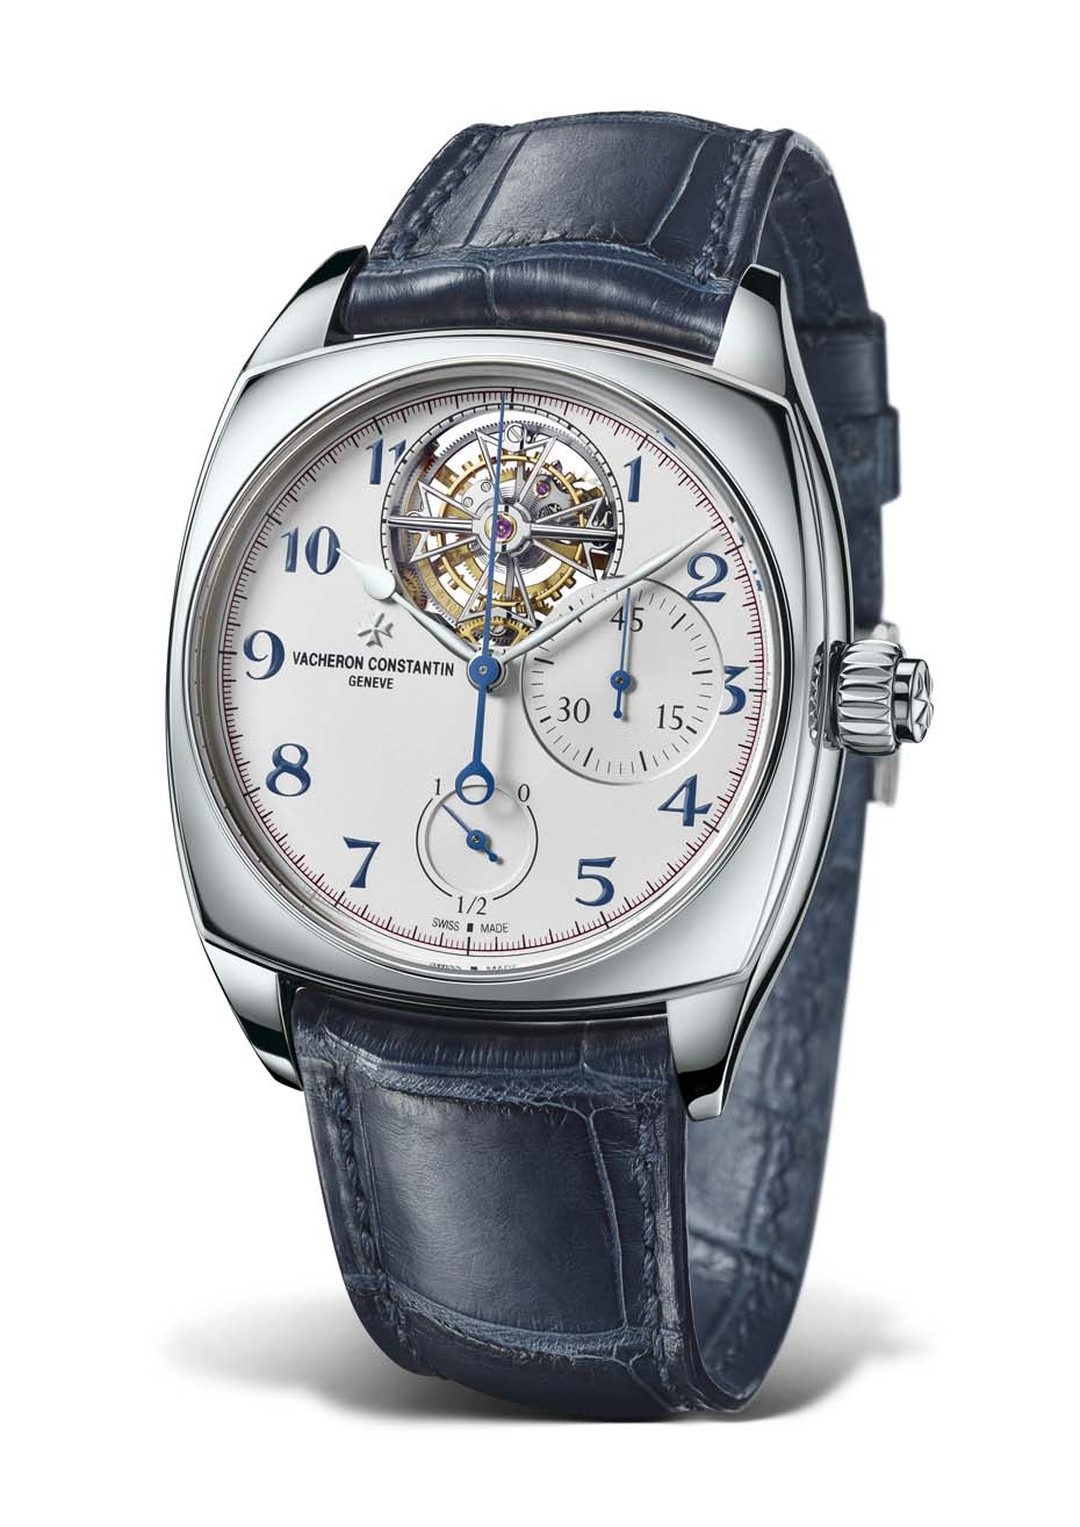 The Vacheron Constantin Harmony Tourbillon Chronograph combines two complications in one and runs on the newly developed hand-wound calibre 3200. This monopusher chronograph features a tourbillon shaped like the Maltese Cross at 12 o'clock.